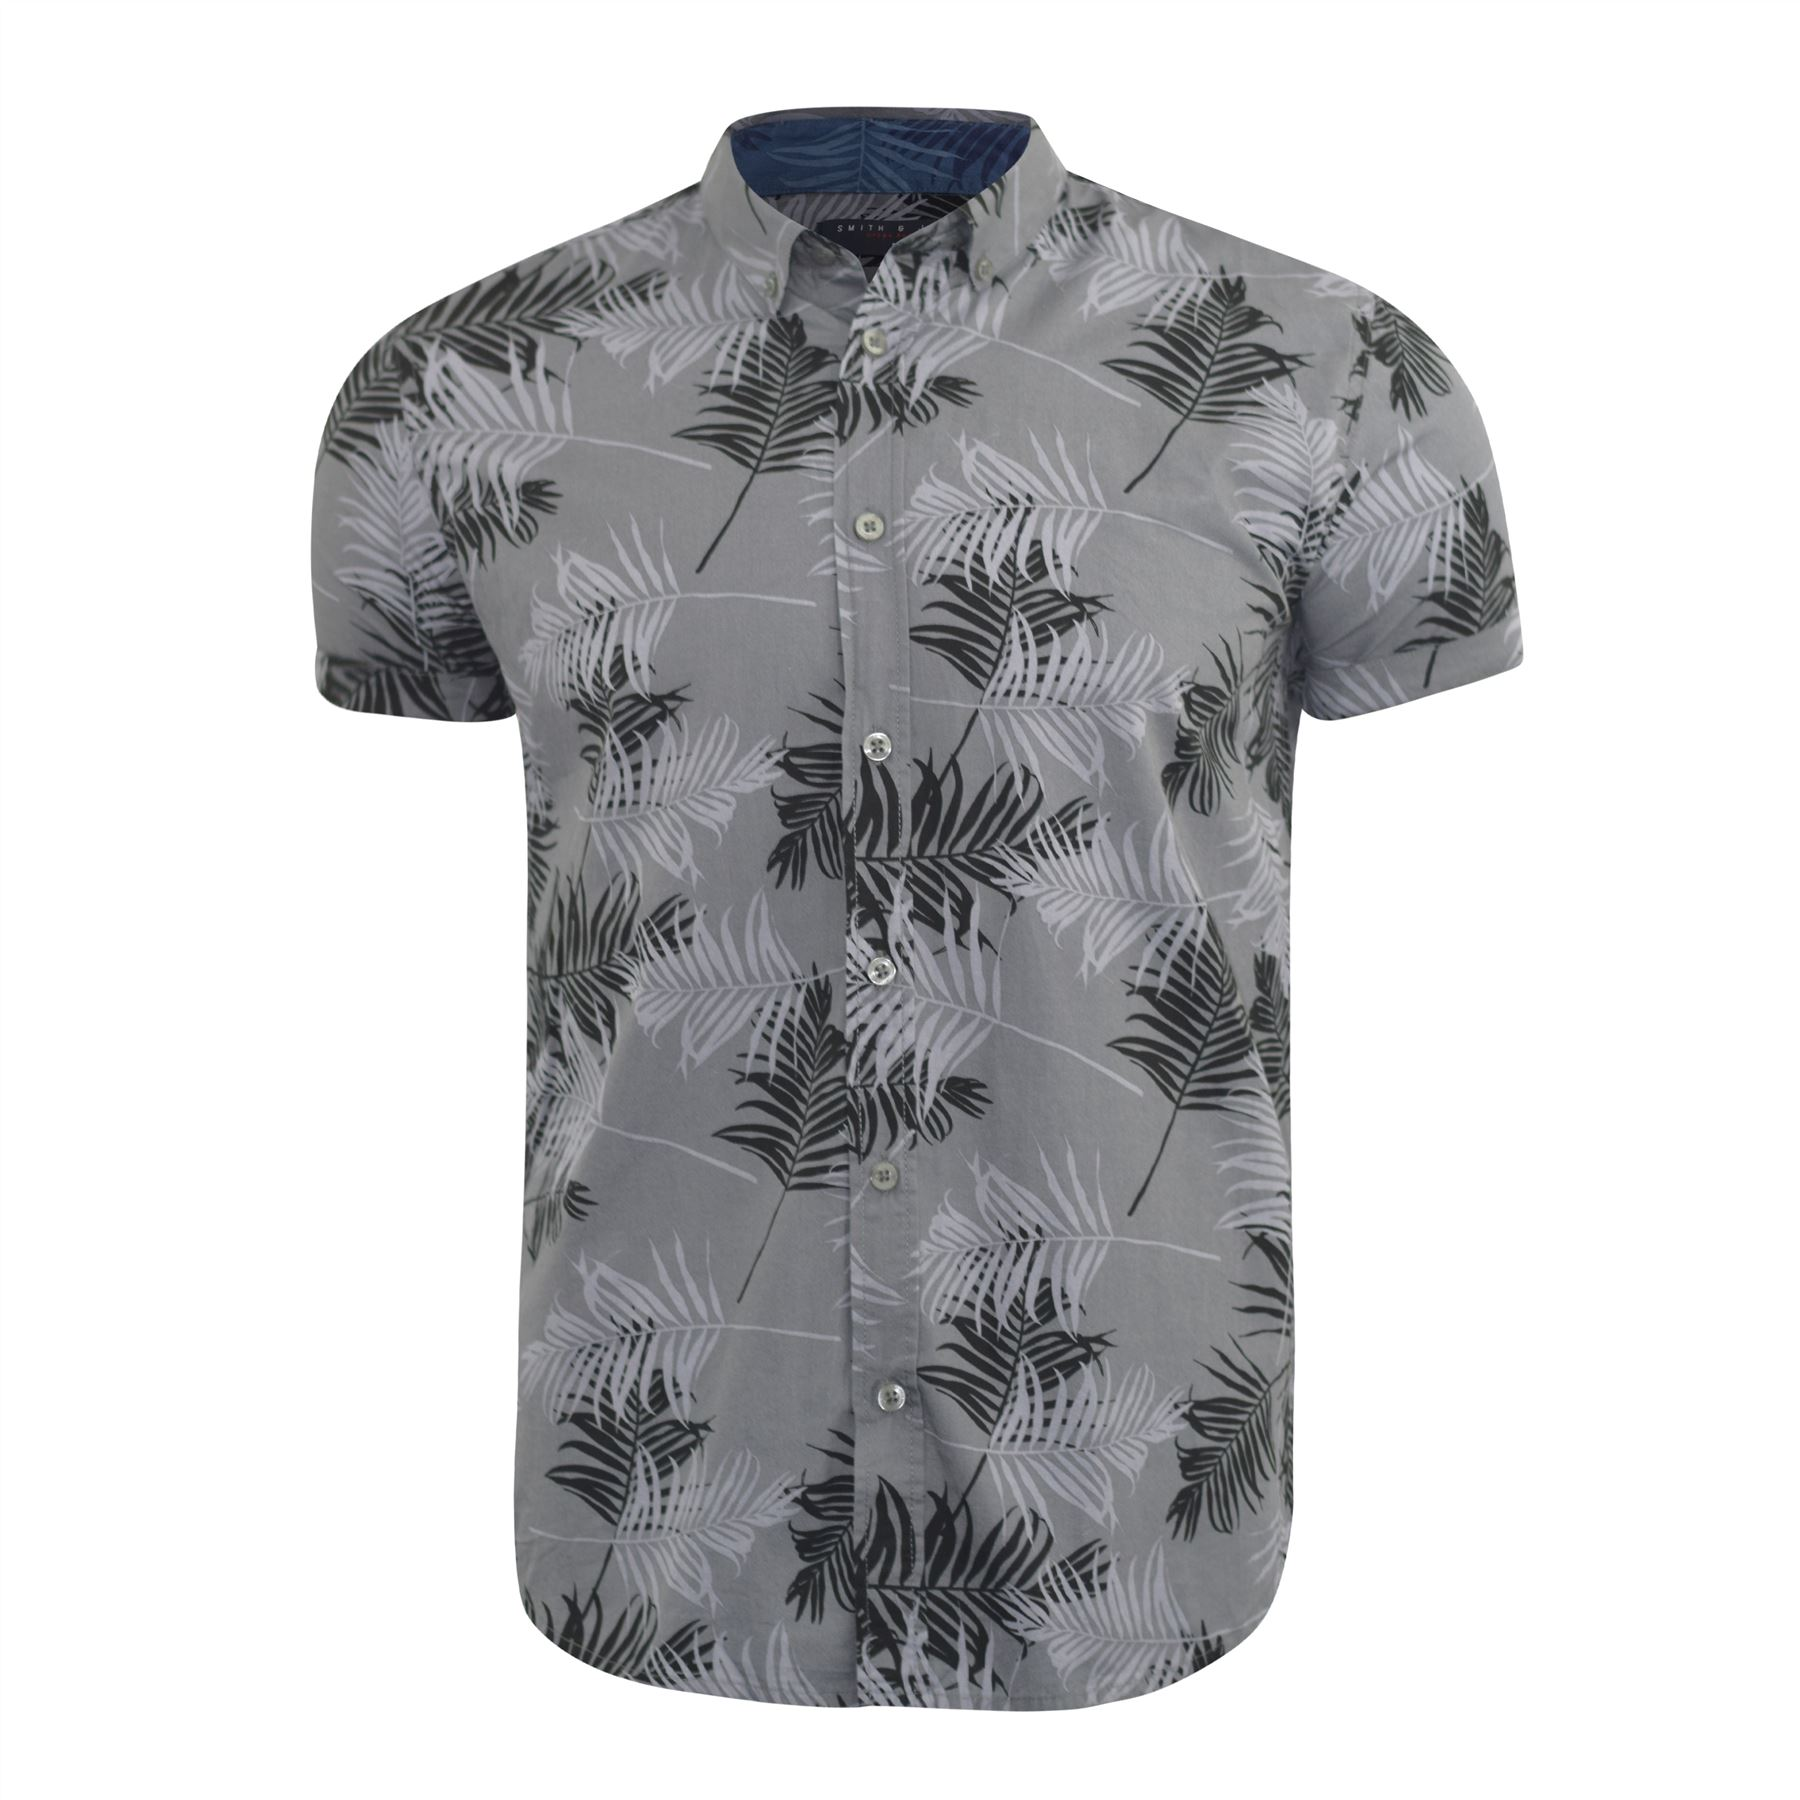 Mens-Floral-Shirt-Audley-Short-Sleeved-Cotton-Blend-Casual-Top thumbnail 3